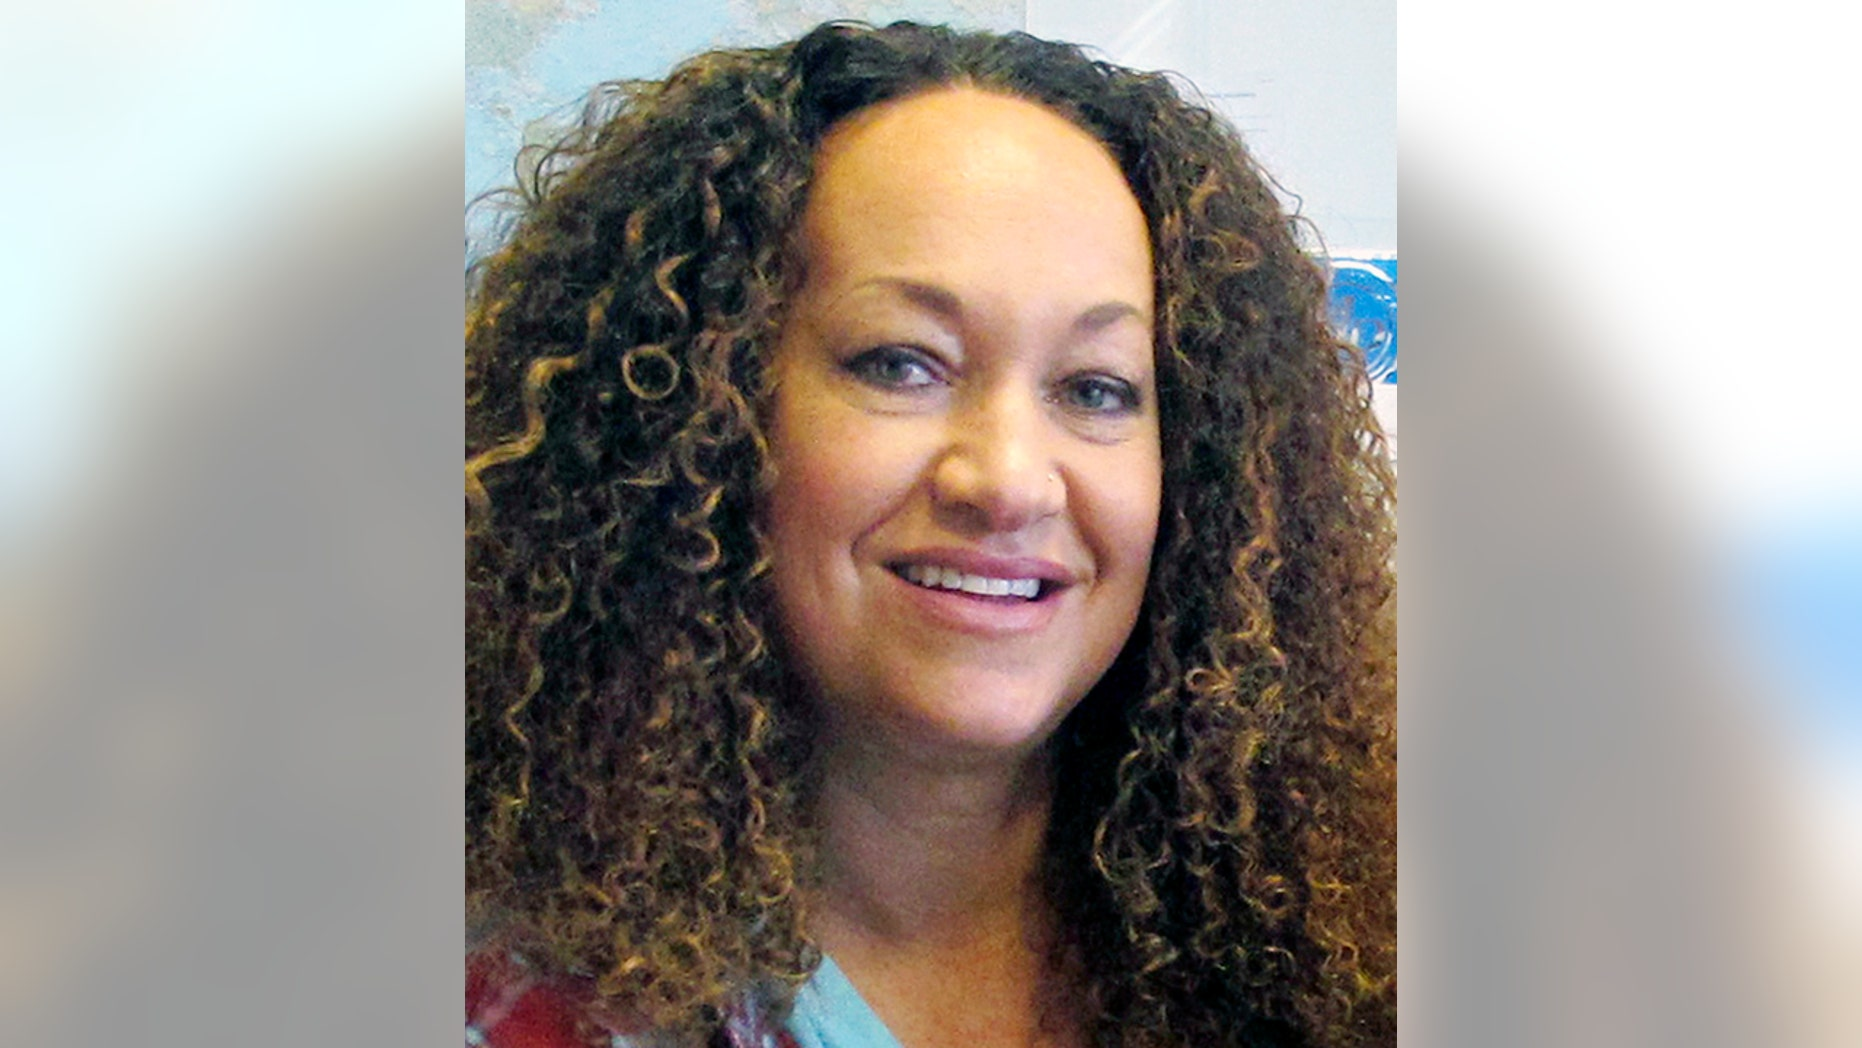 Rachel Dolezal is pictured in March 2017, six months after she changed her name to Nkechi Diallo. (Associated Press)